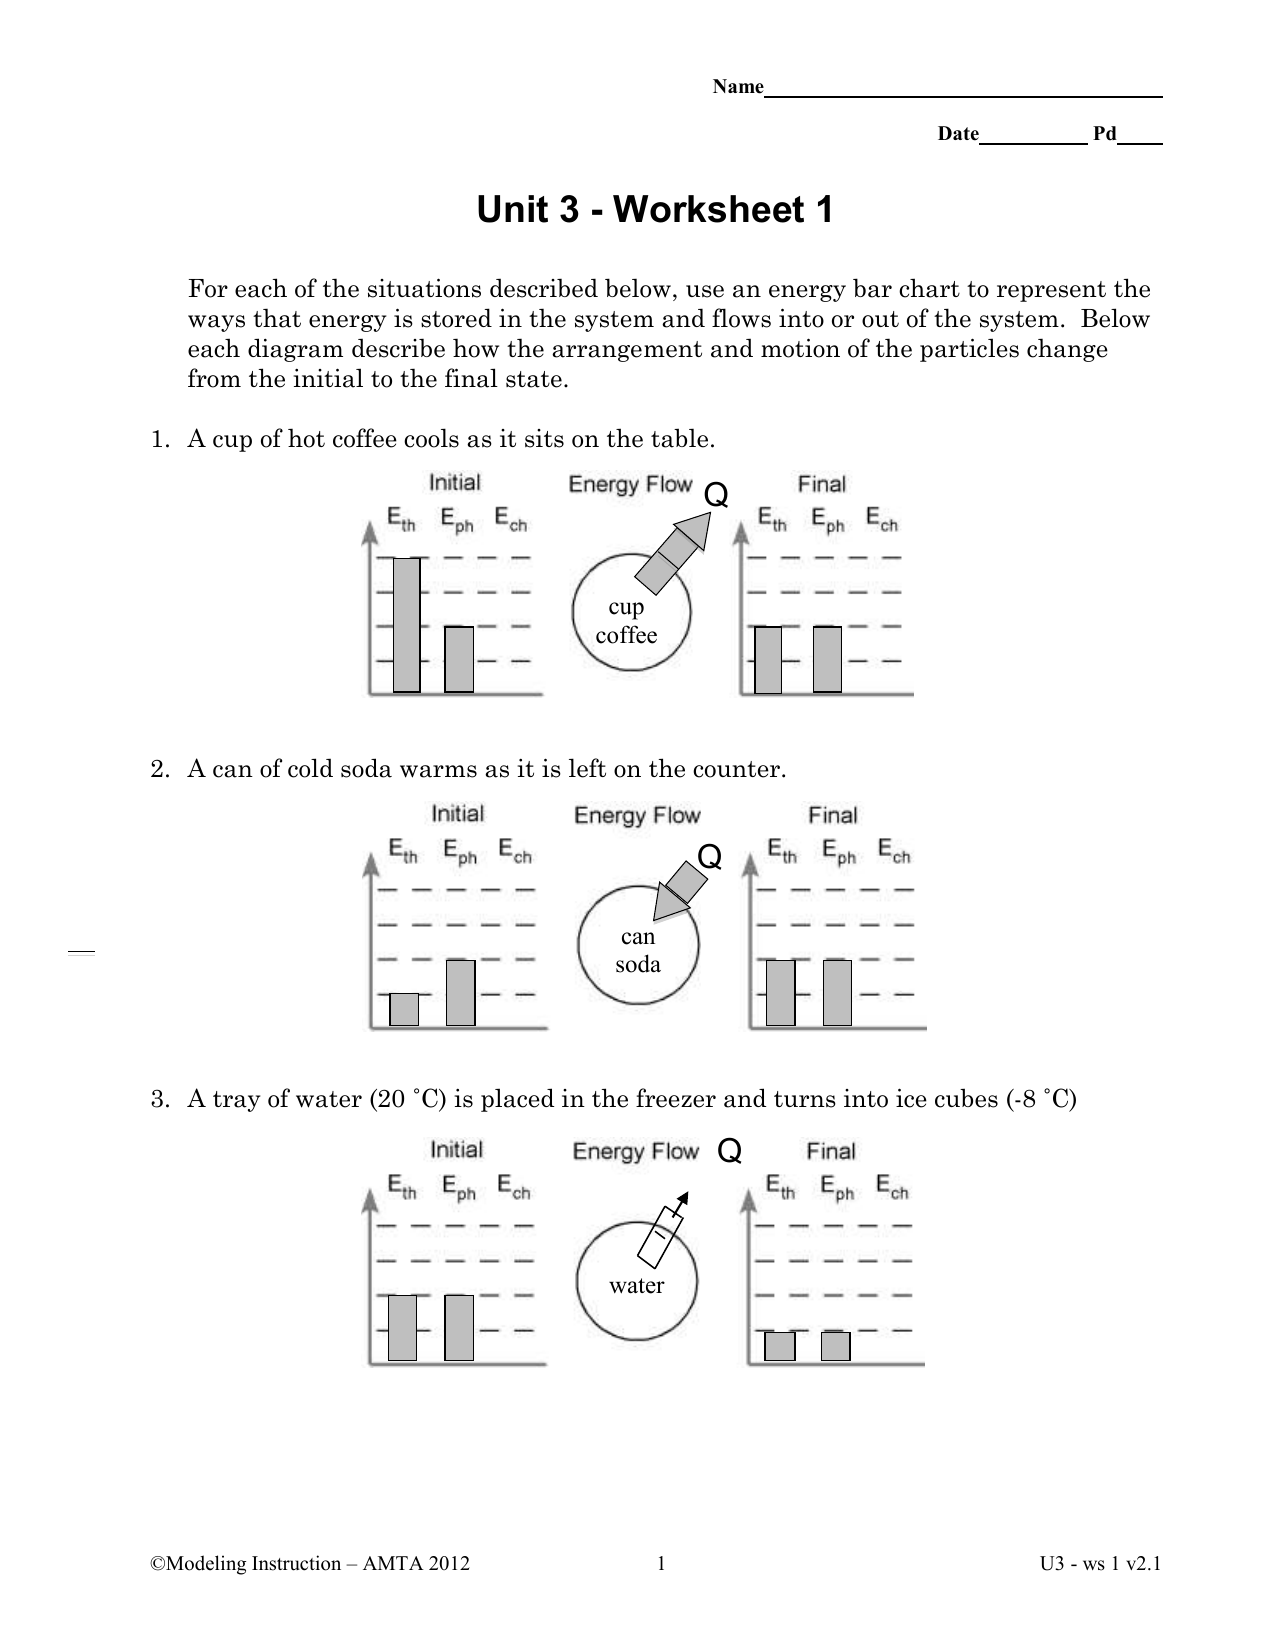 Unit 3 Worksheet 1